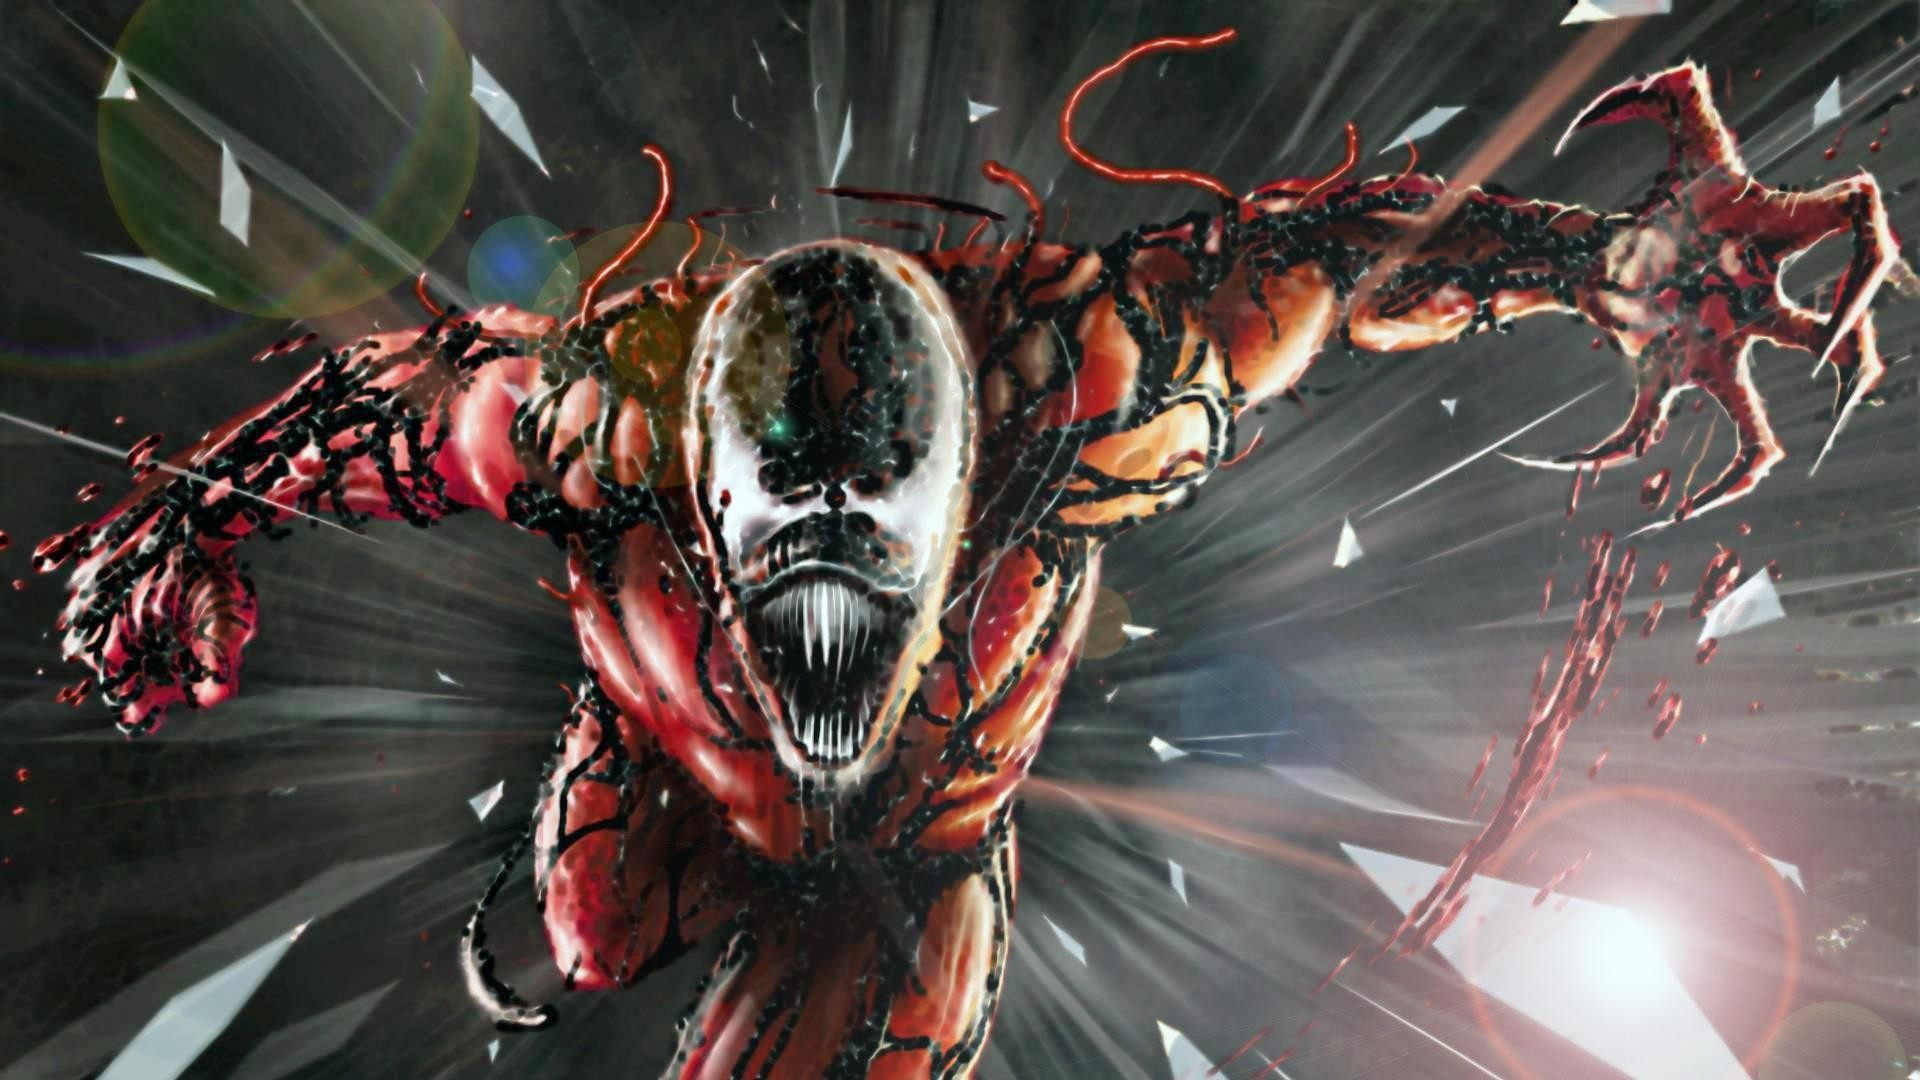 Carnage Wallpaper – Wallpapers Browse